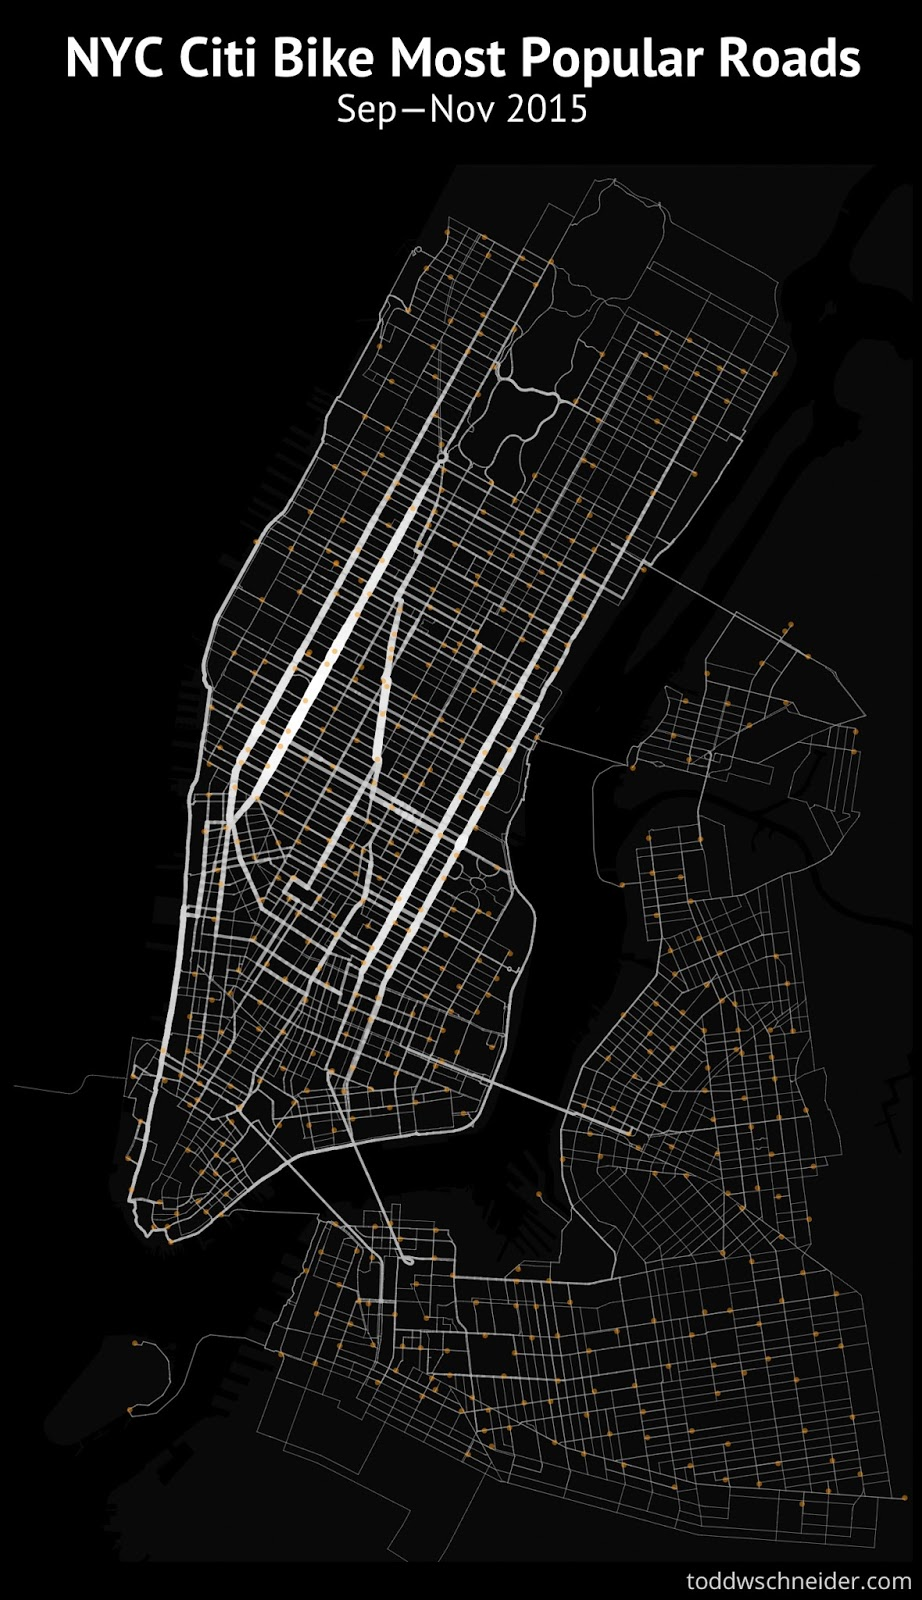 New York Citi bike most popular roads